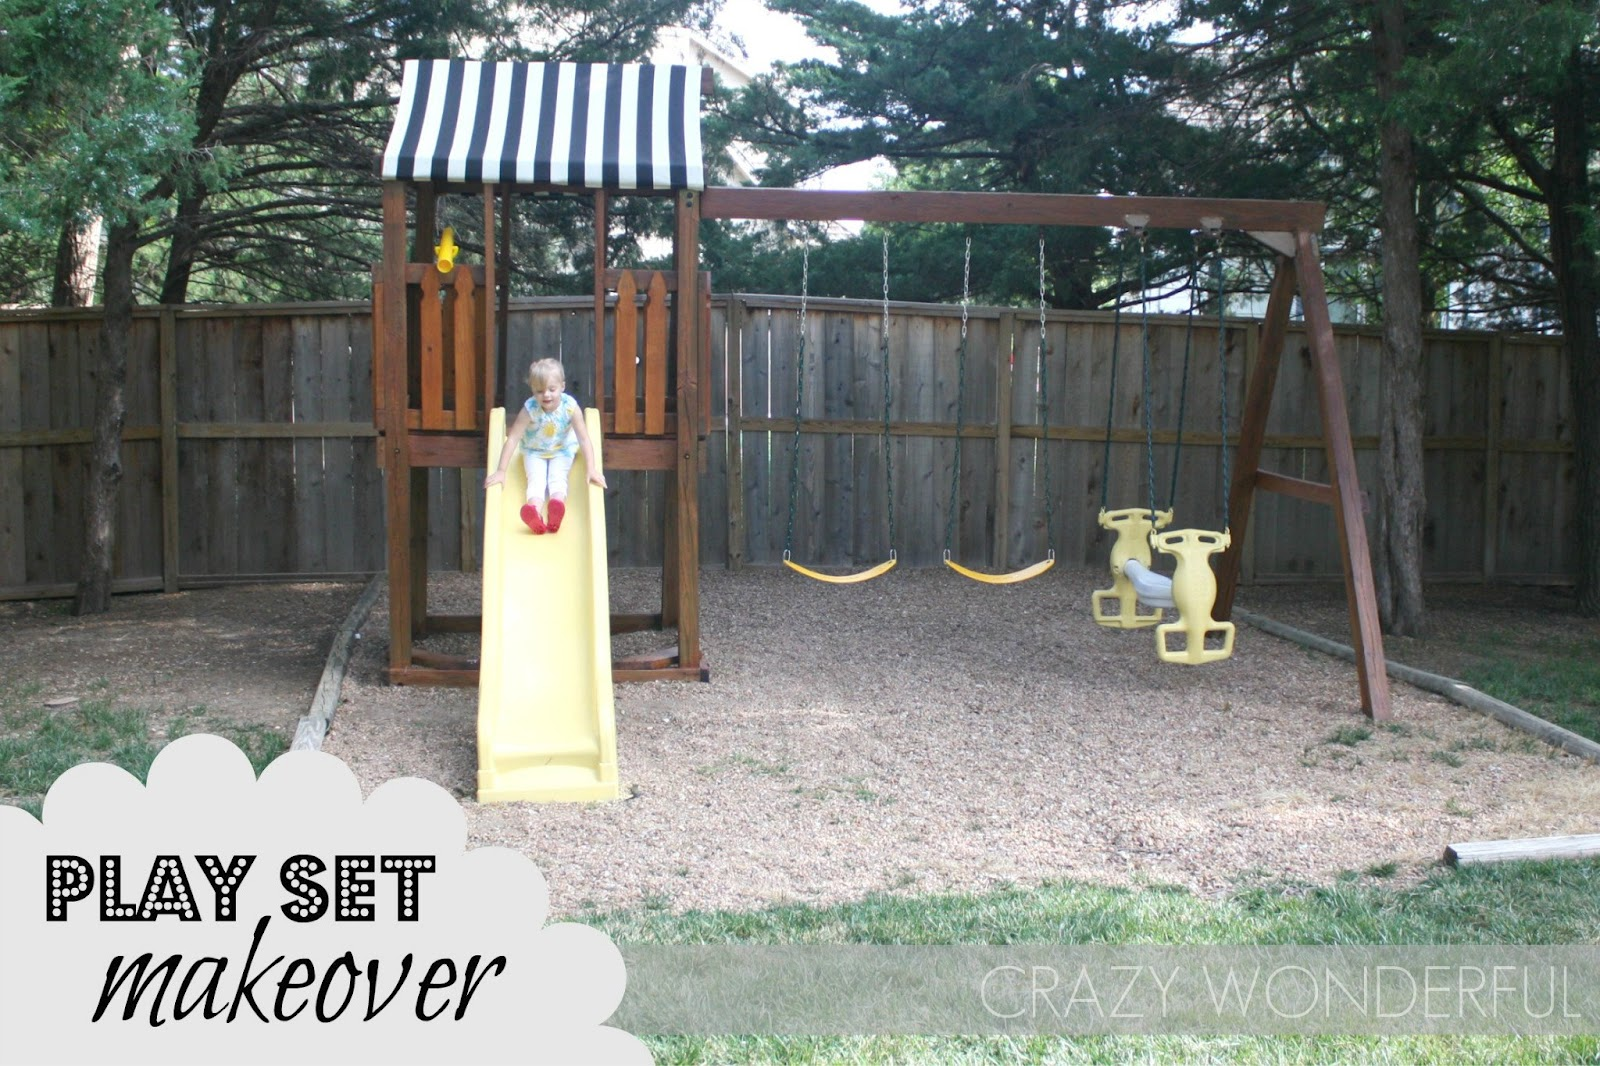 Playset Makeover